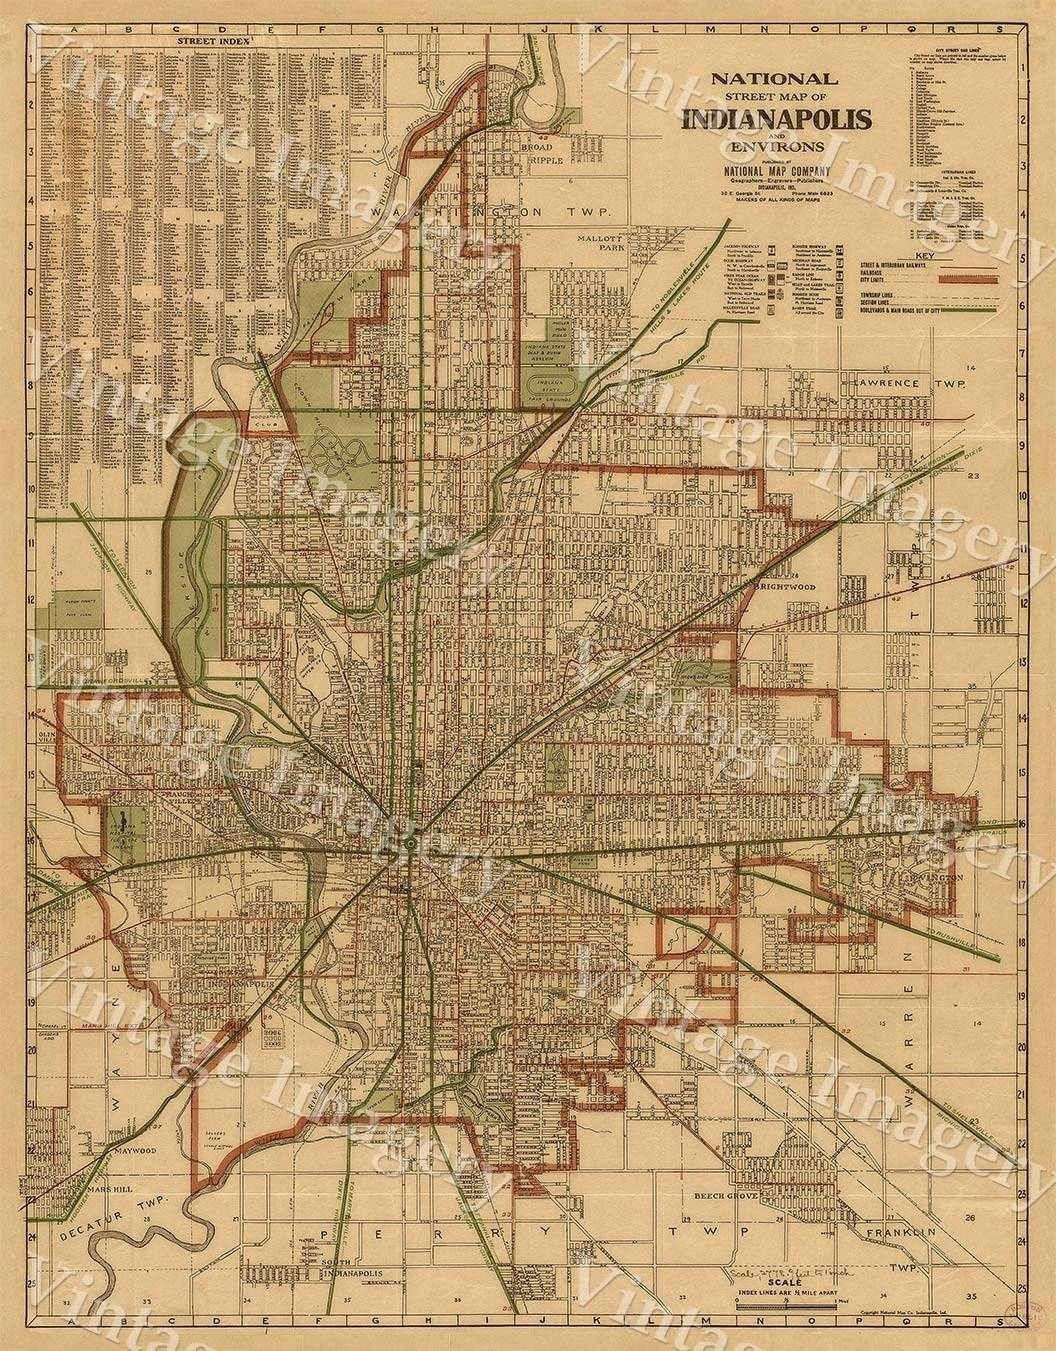 Indianapolis Map 1921 Old Antique Restoration Hardware Style In Latest Street Map Wall Art (View 12 of 20)